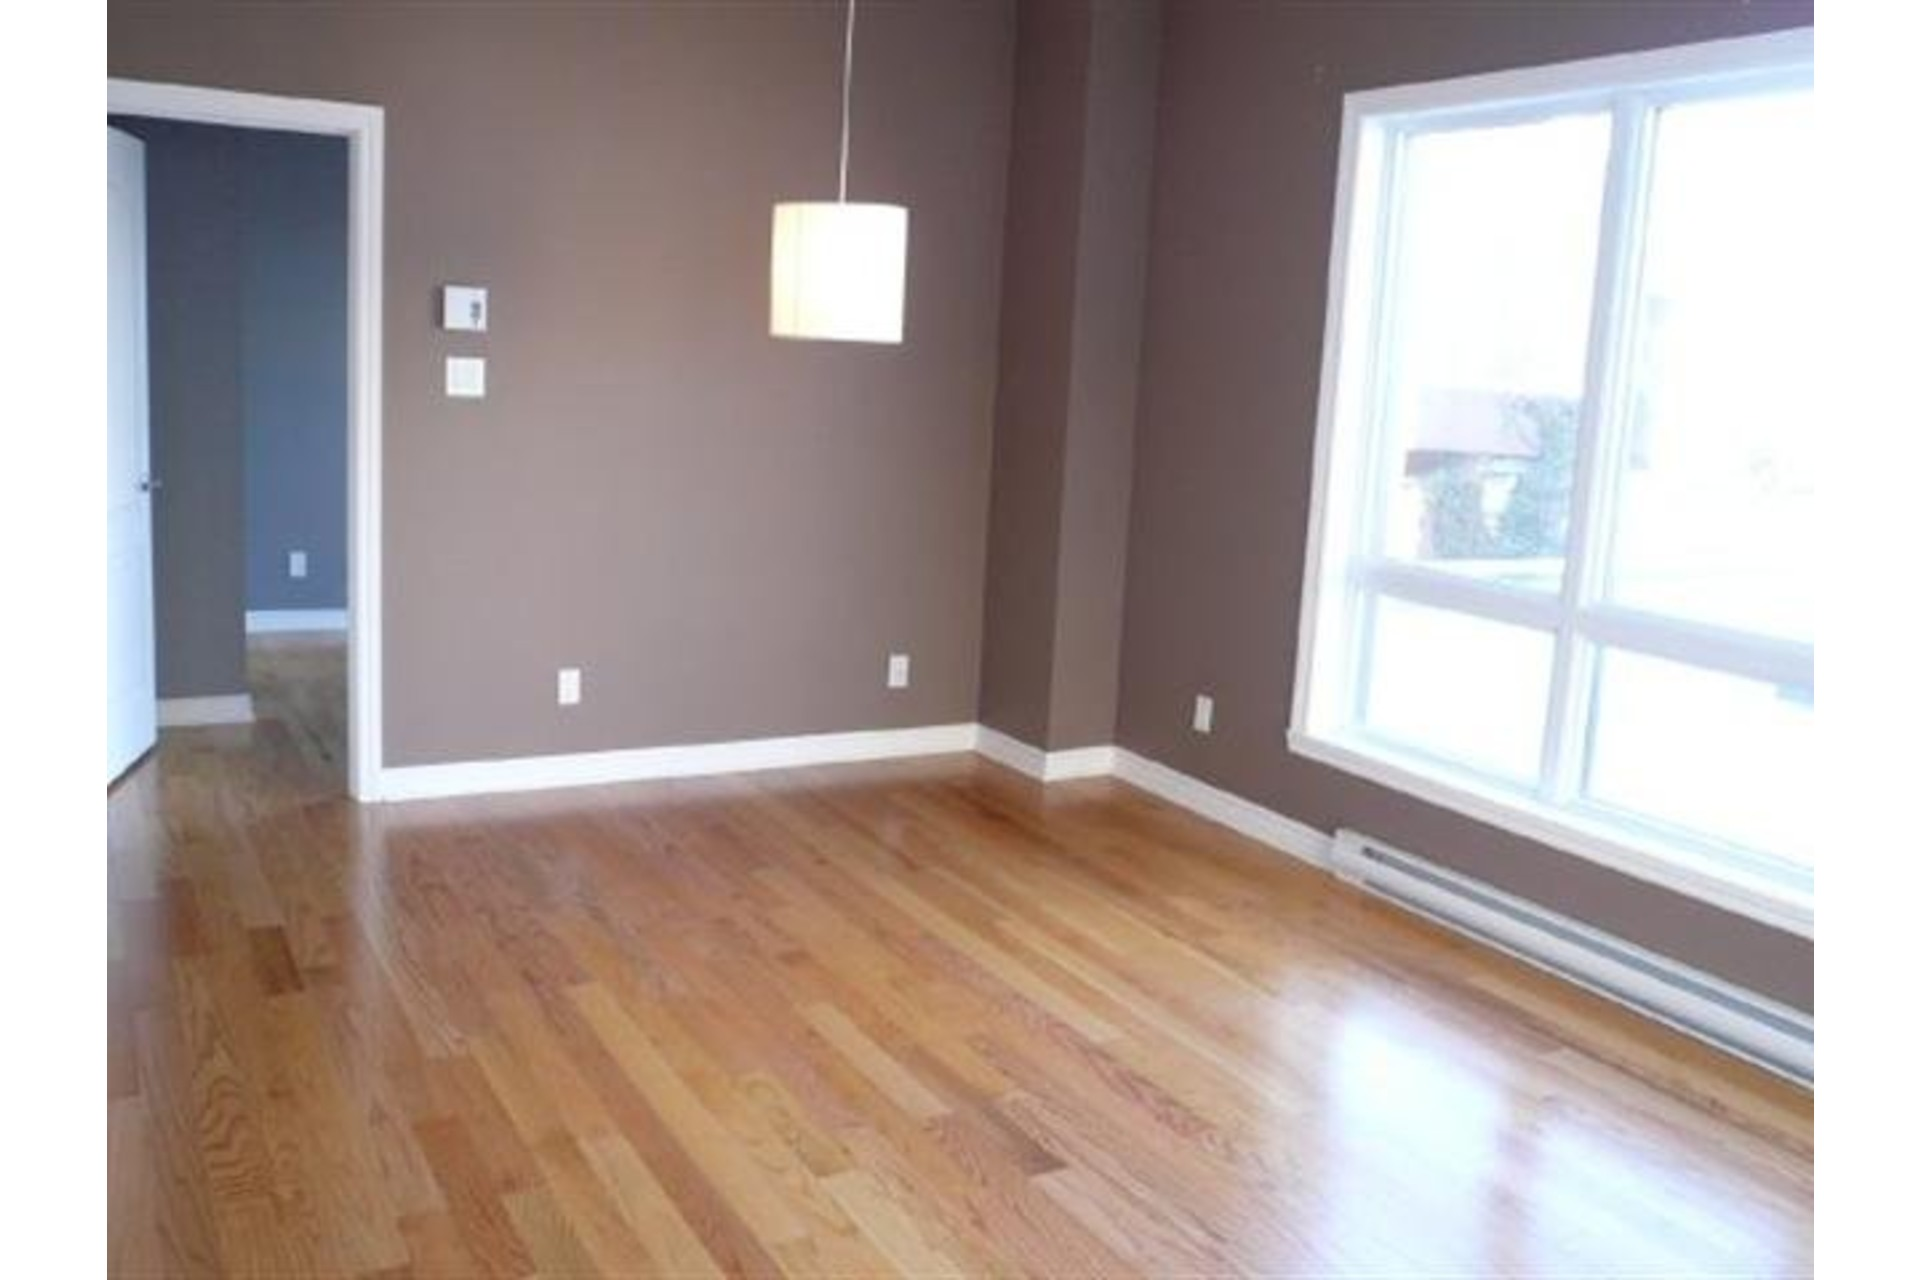 Apartment For rent Ville-Marie Montréal  - 4 rooms